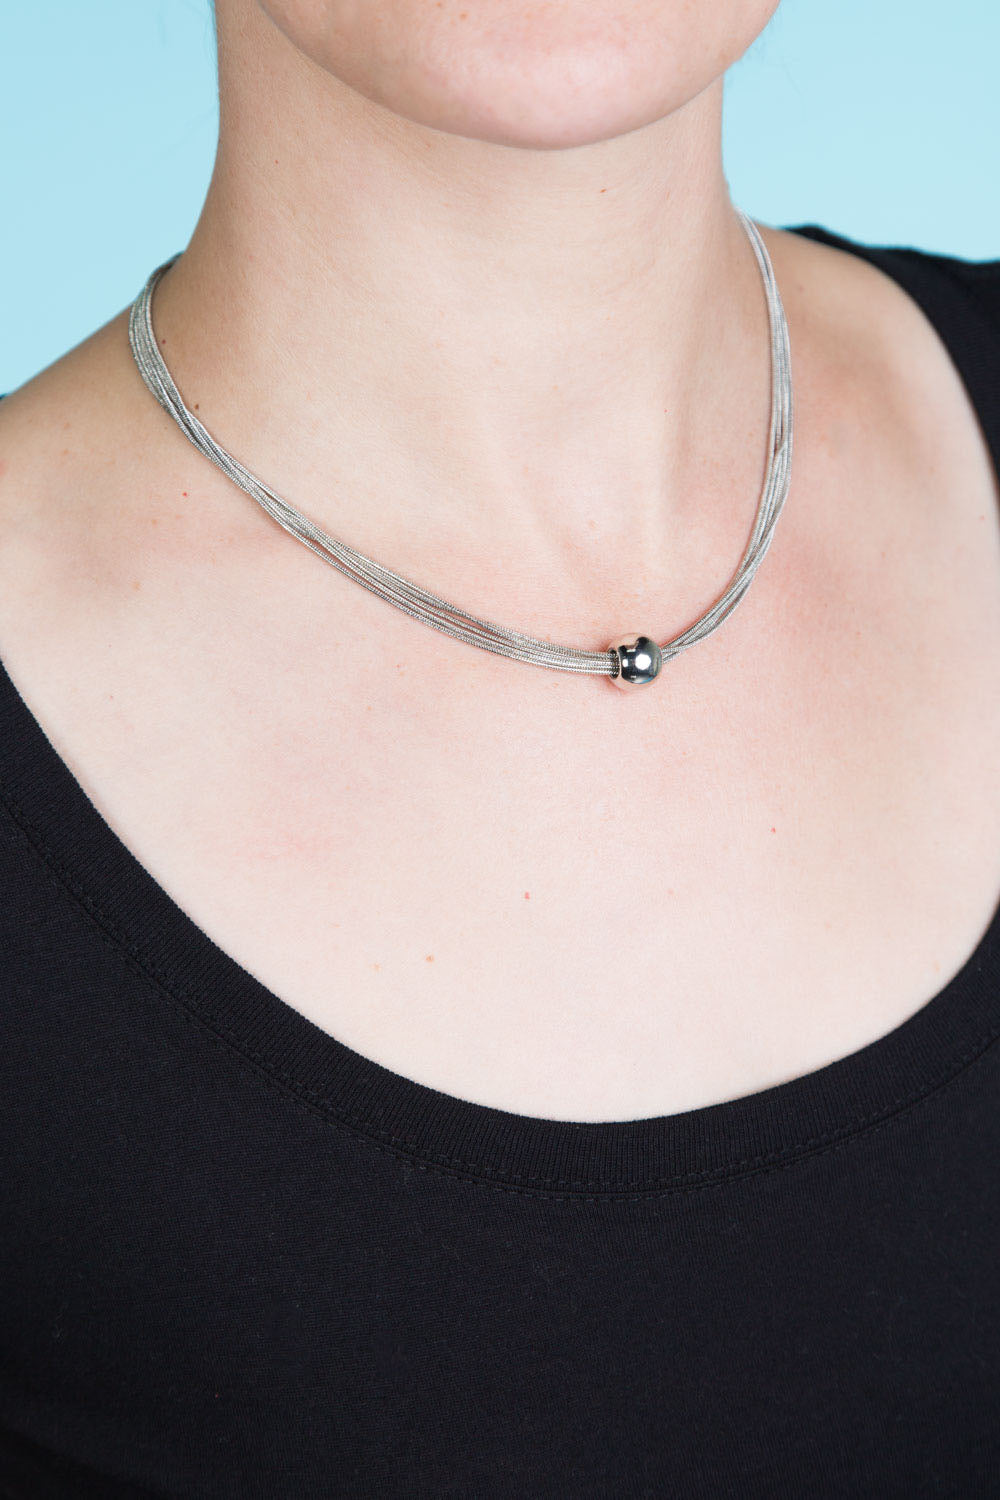 Type 4 Slick Slider Necklace